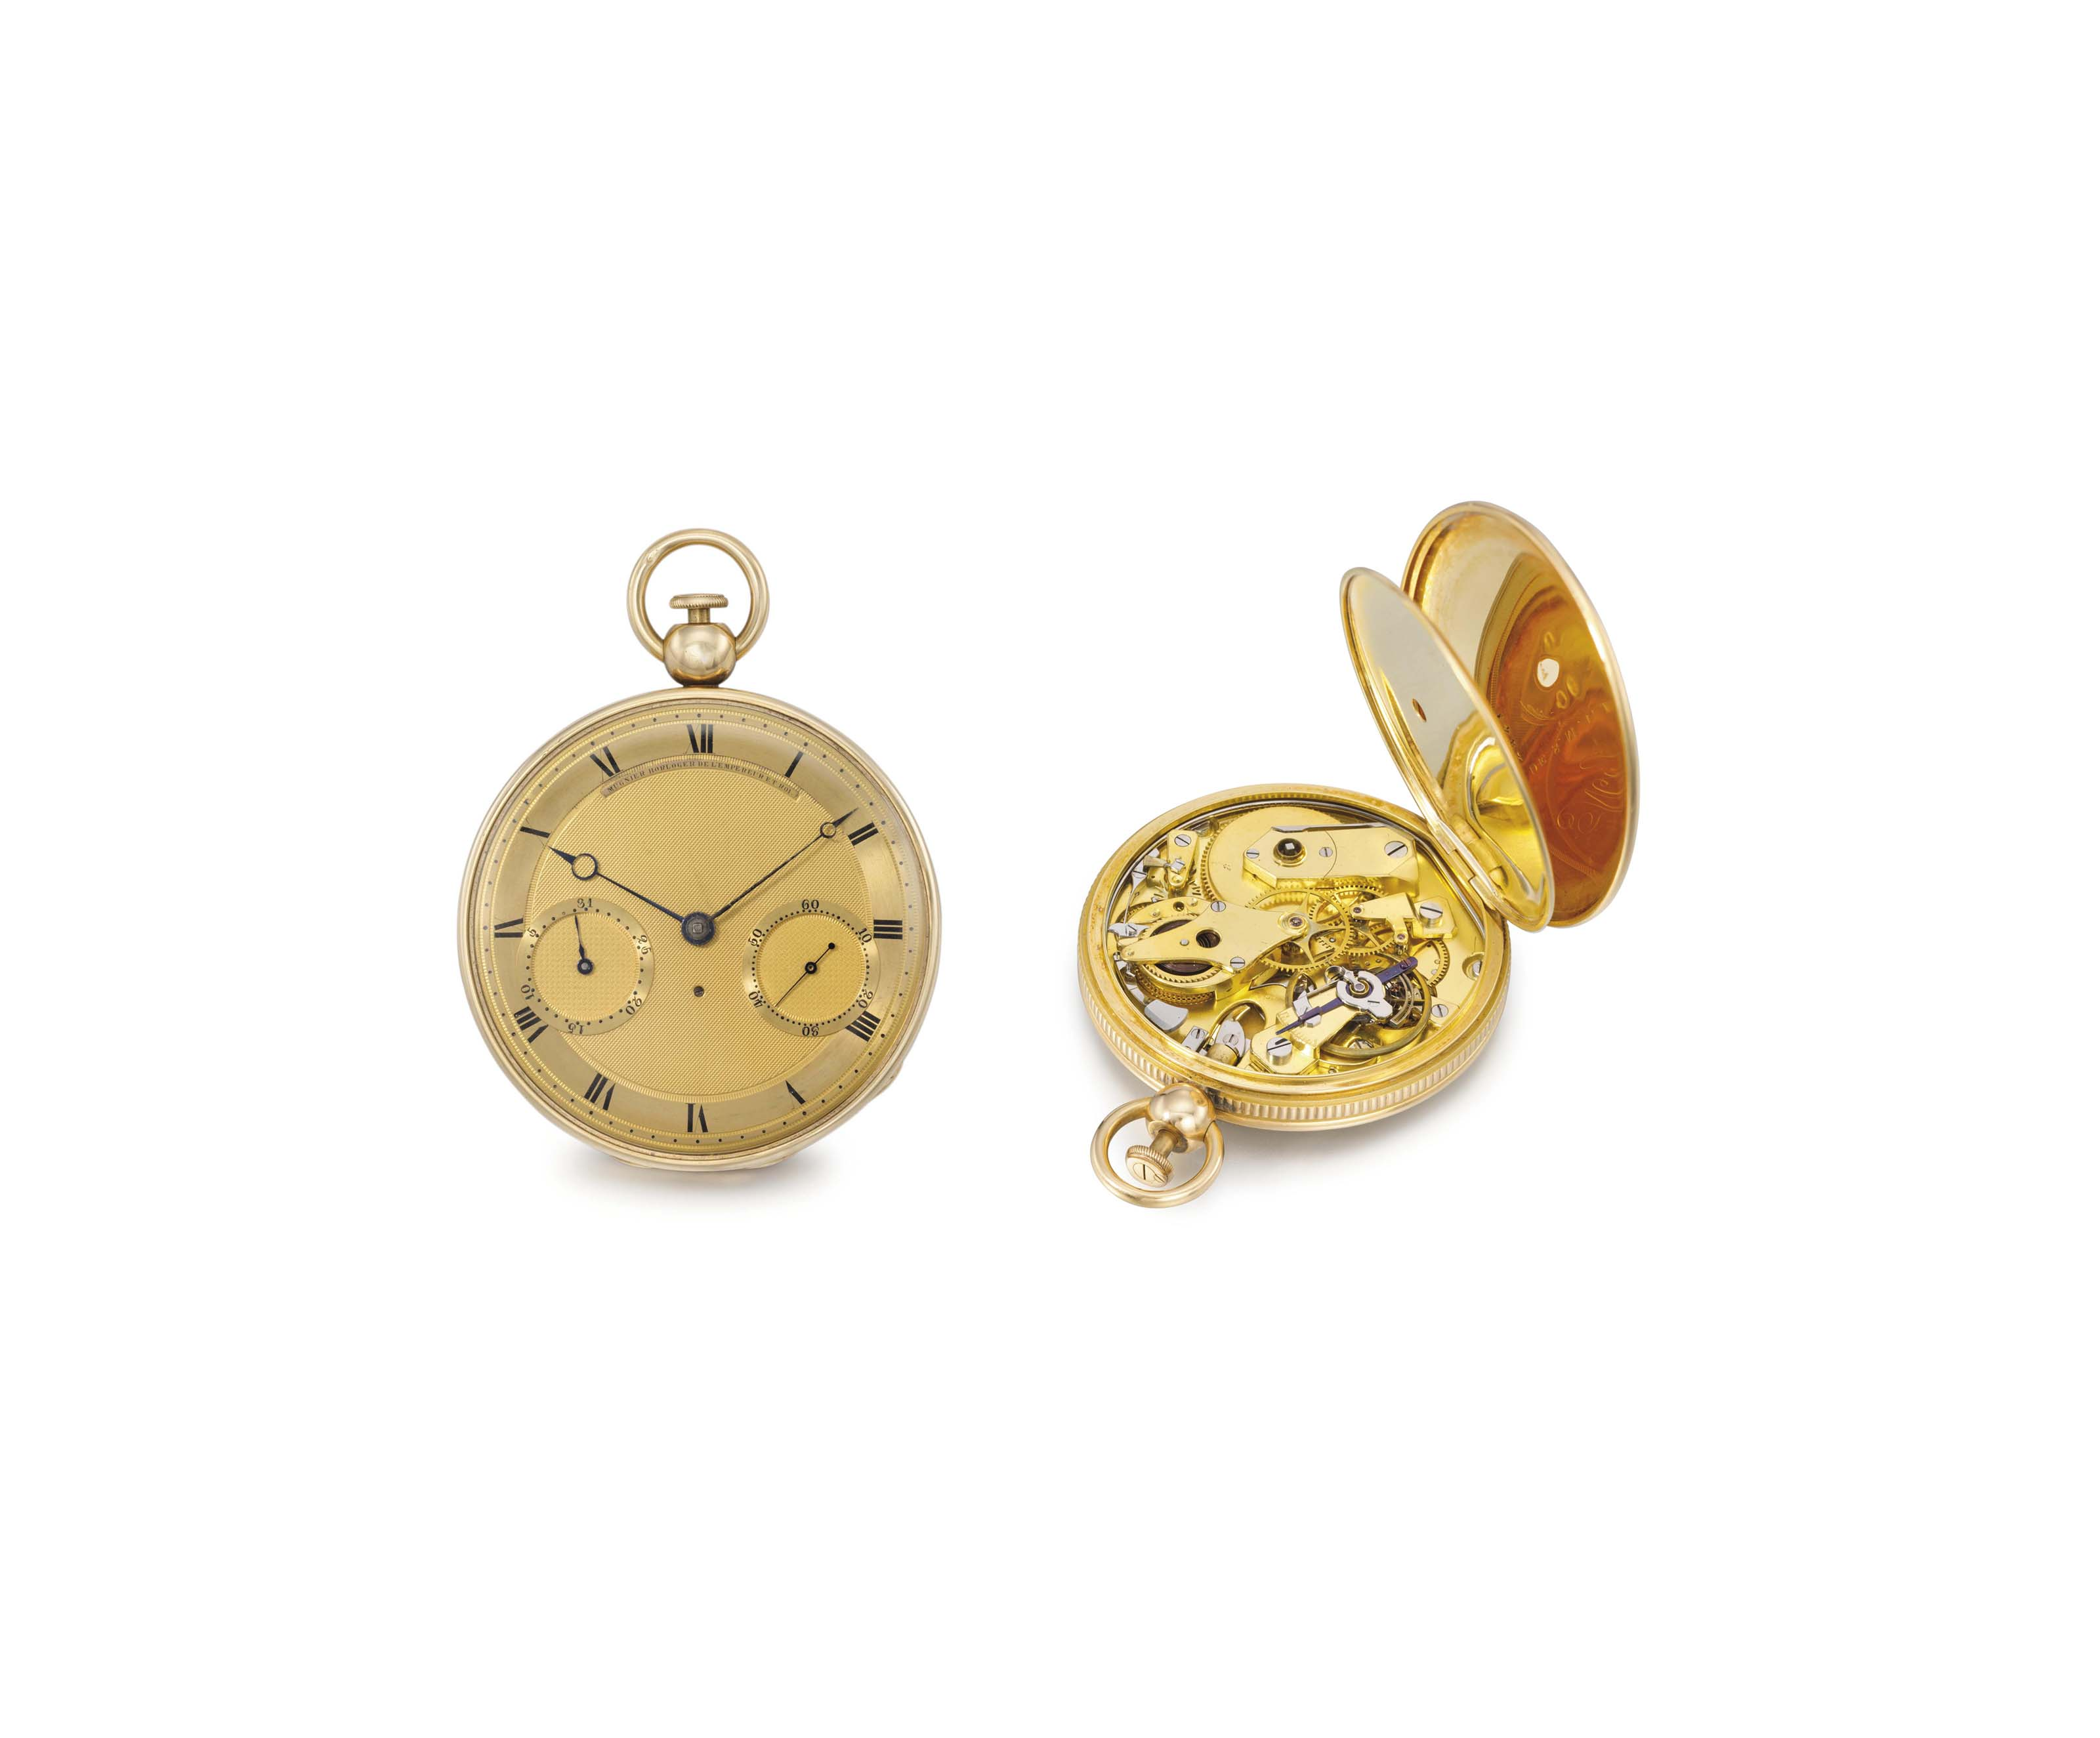 Mugnier. A fine 18K gold openface à toc quarter repeating jump hour watch with date of the month